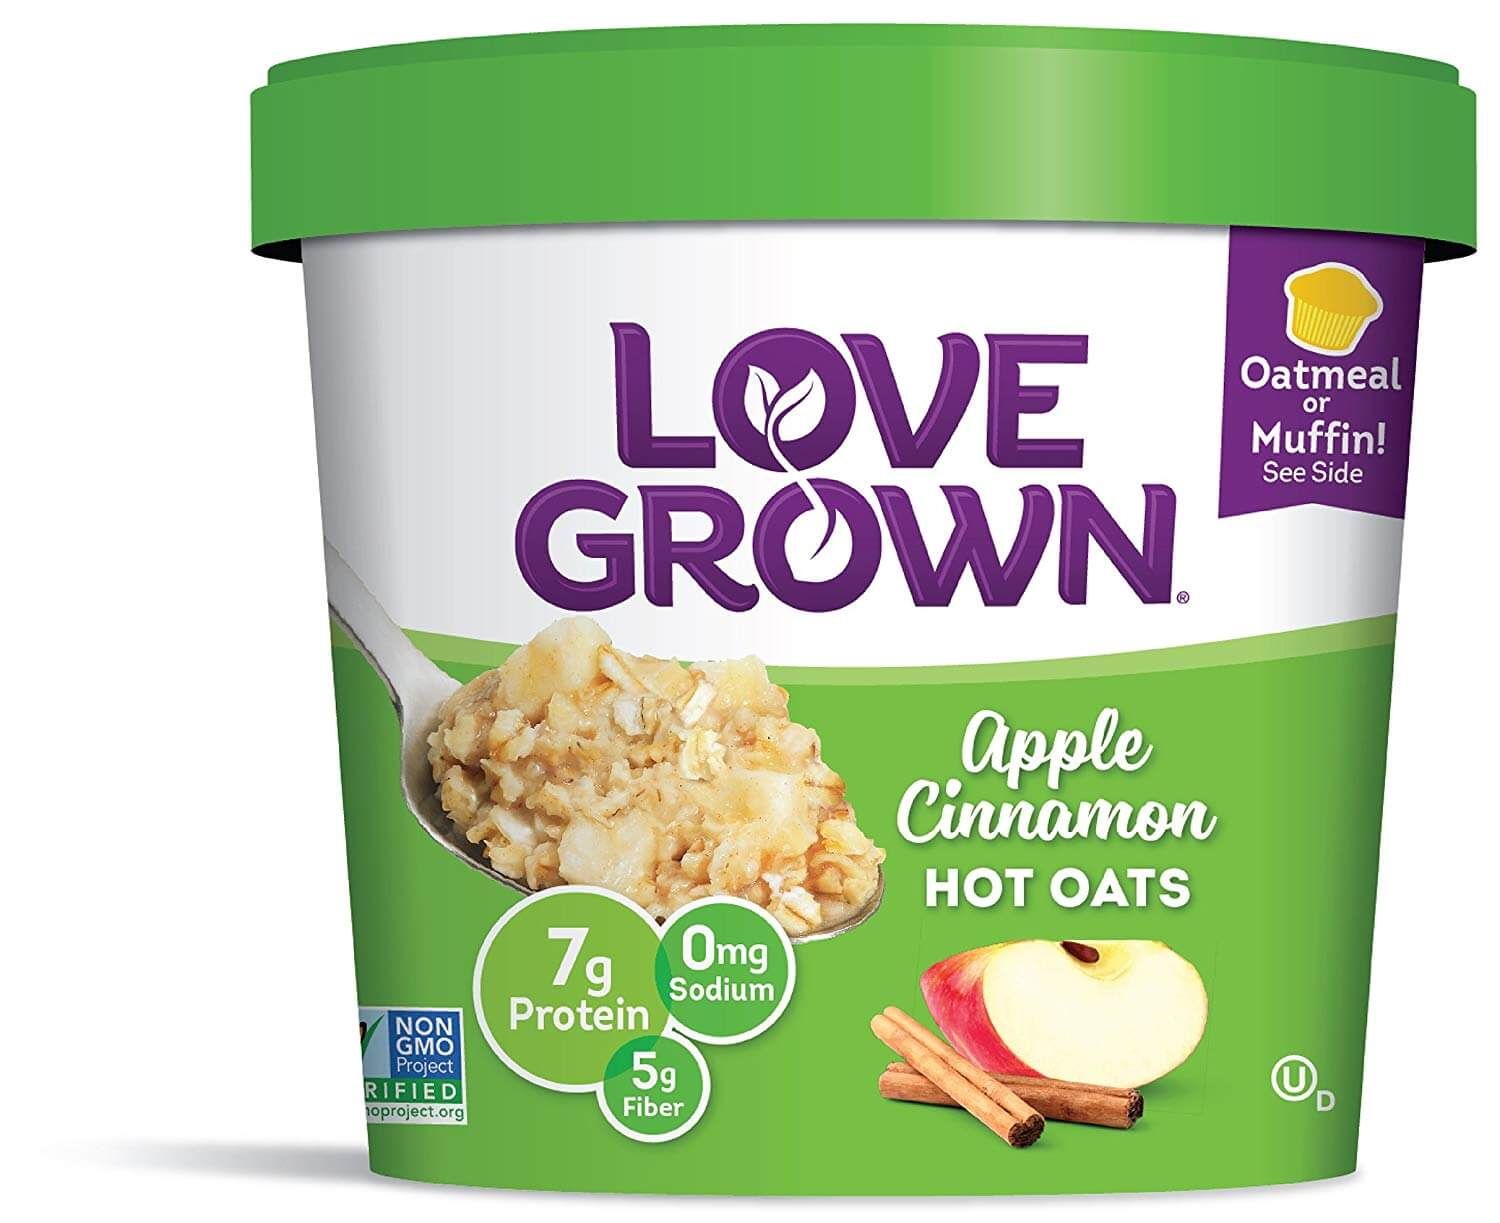 Love Grown Apple Cinnamon Oatmeal